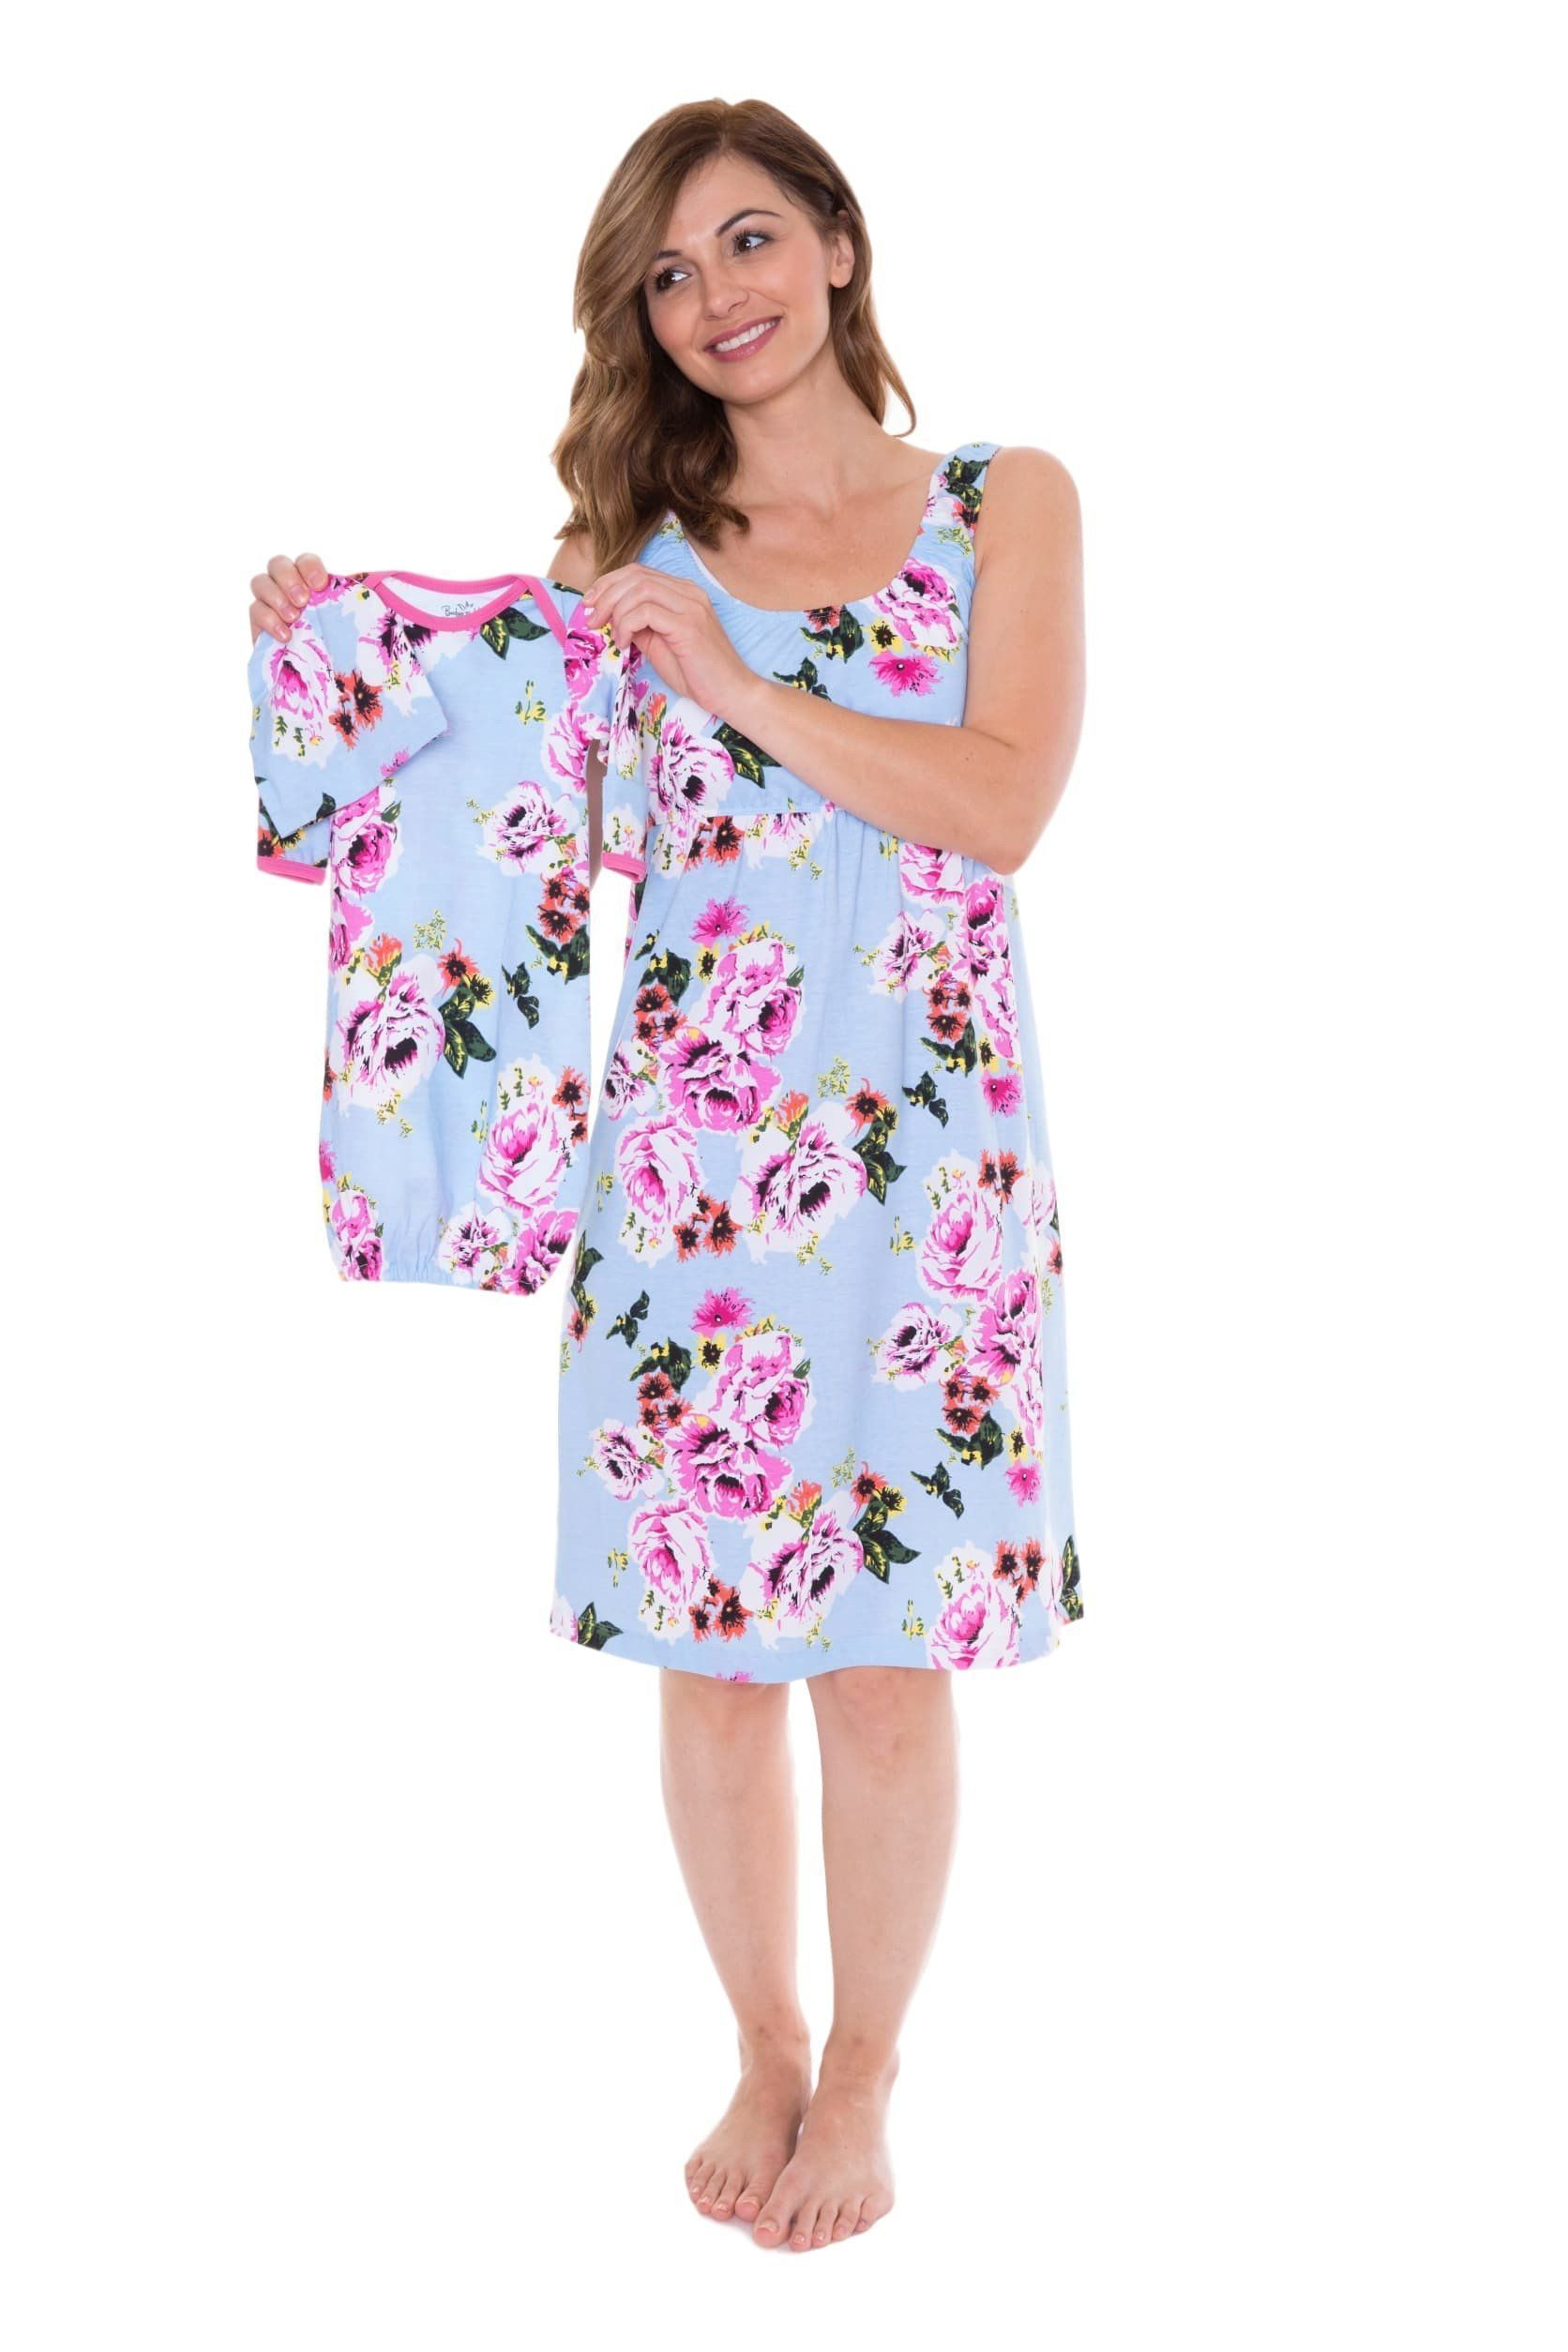 ac22ede746e67 Isla Maternity/Nursing Nightgown & Matching Baby Receiving Gown Set  #babynightgowns